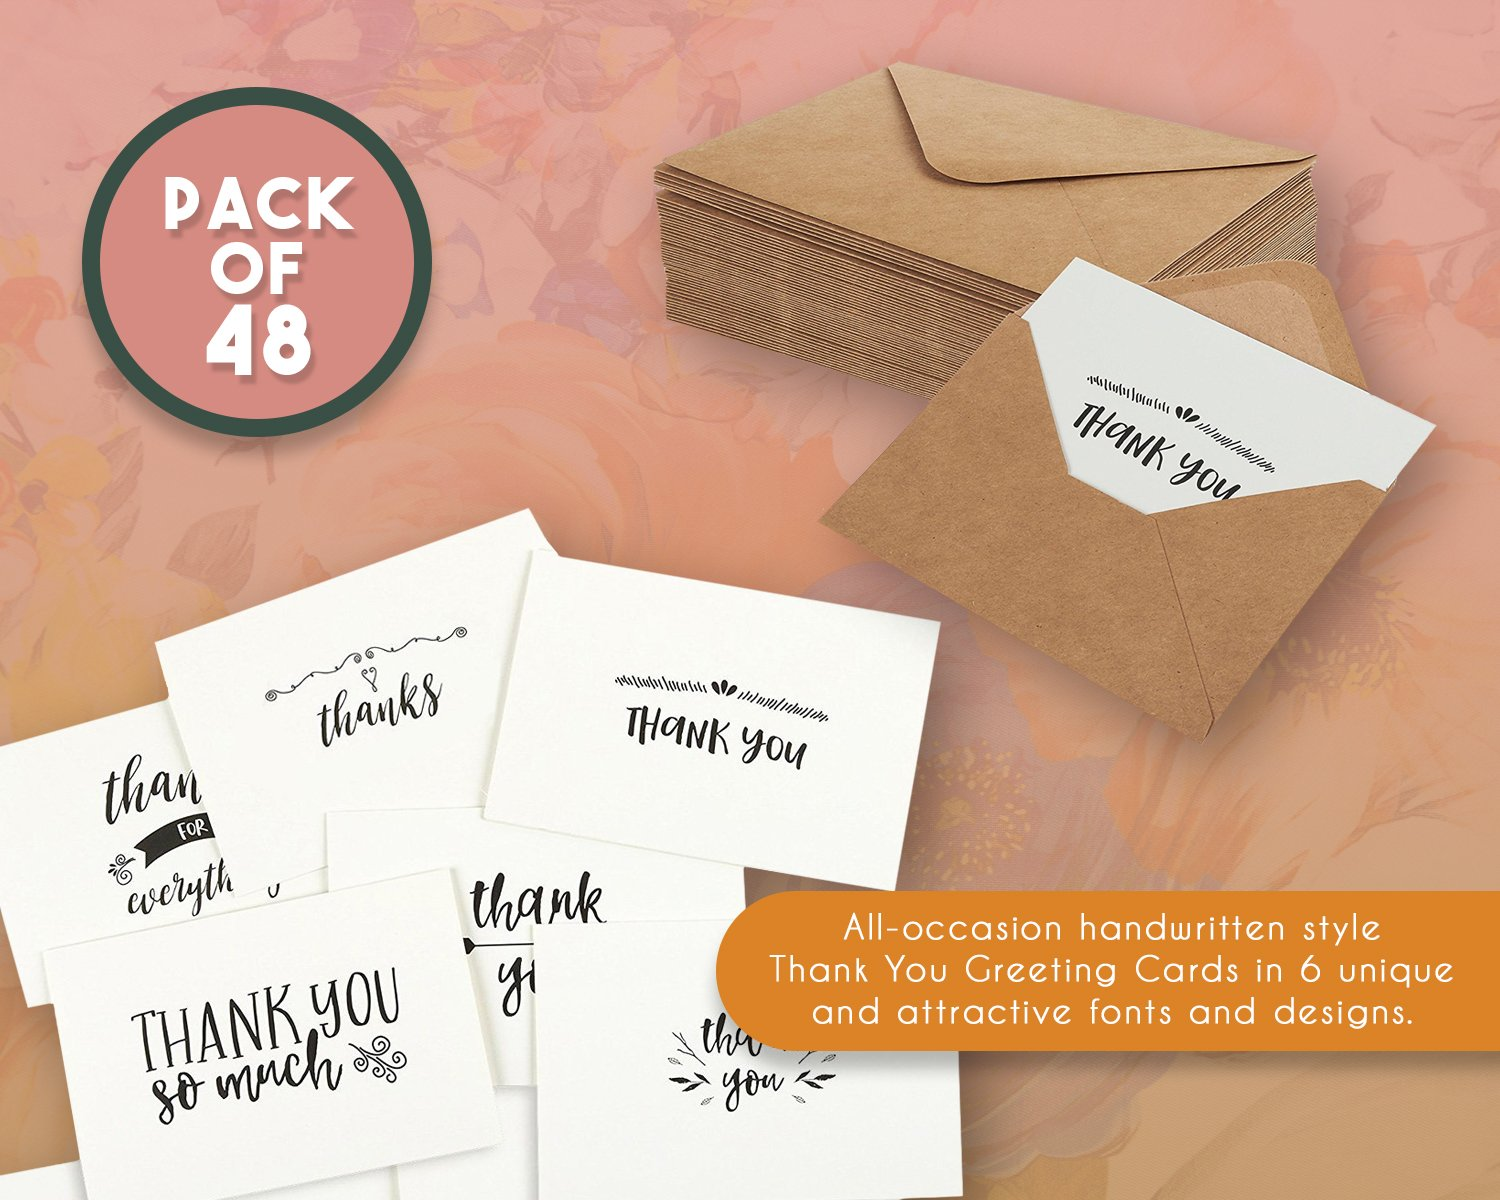 Amazon thank you cards 36 count thank you notes kraft amazon thank you cards 36 count thank you notes kraft paper bulk thank you cards set blank on the inside handwritten style includes thank you kristyandbryce Image collections